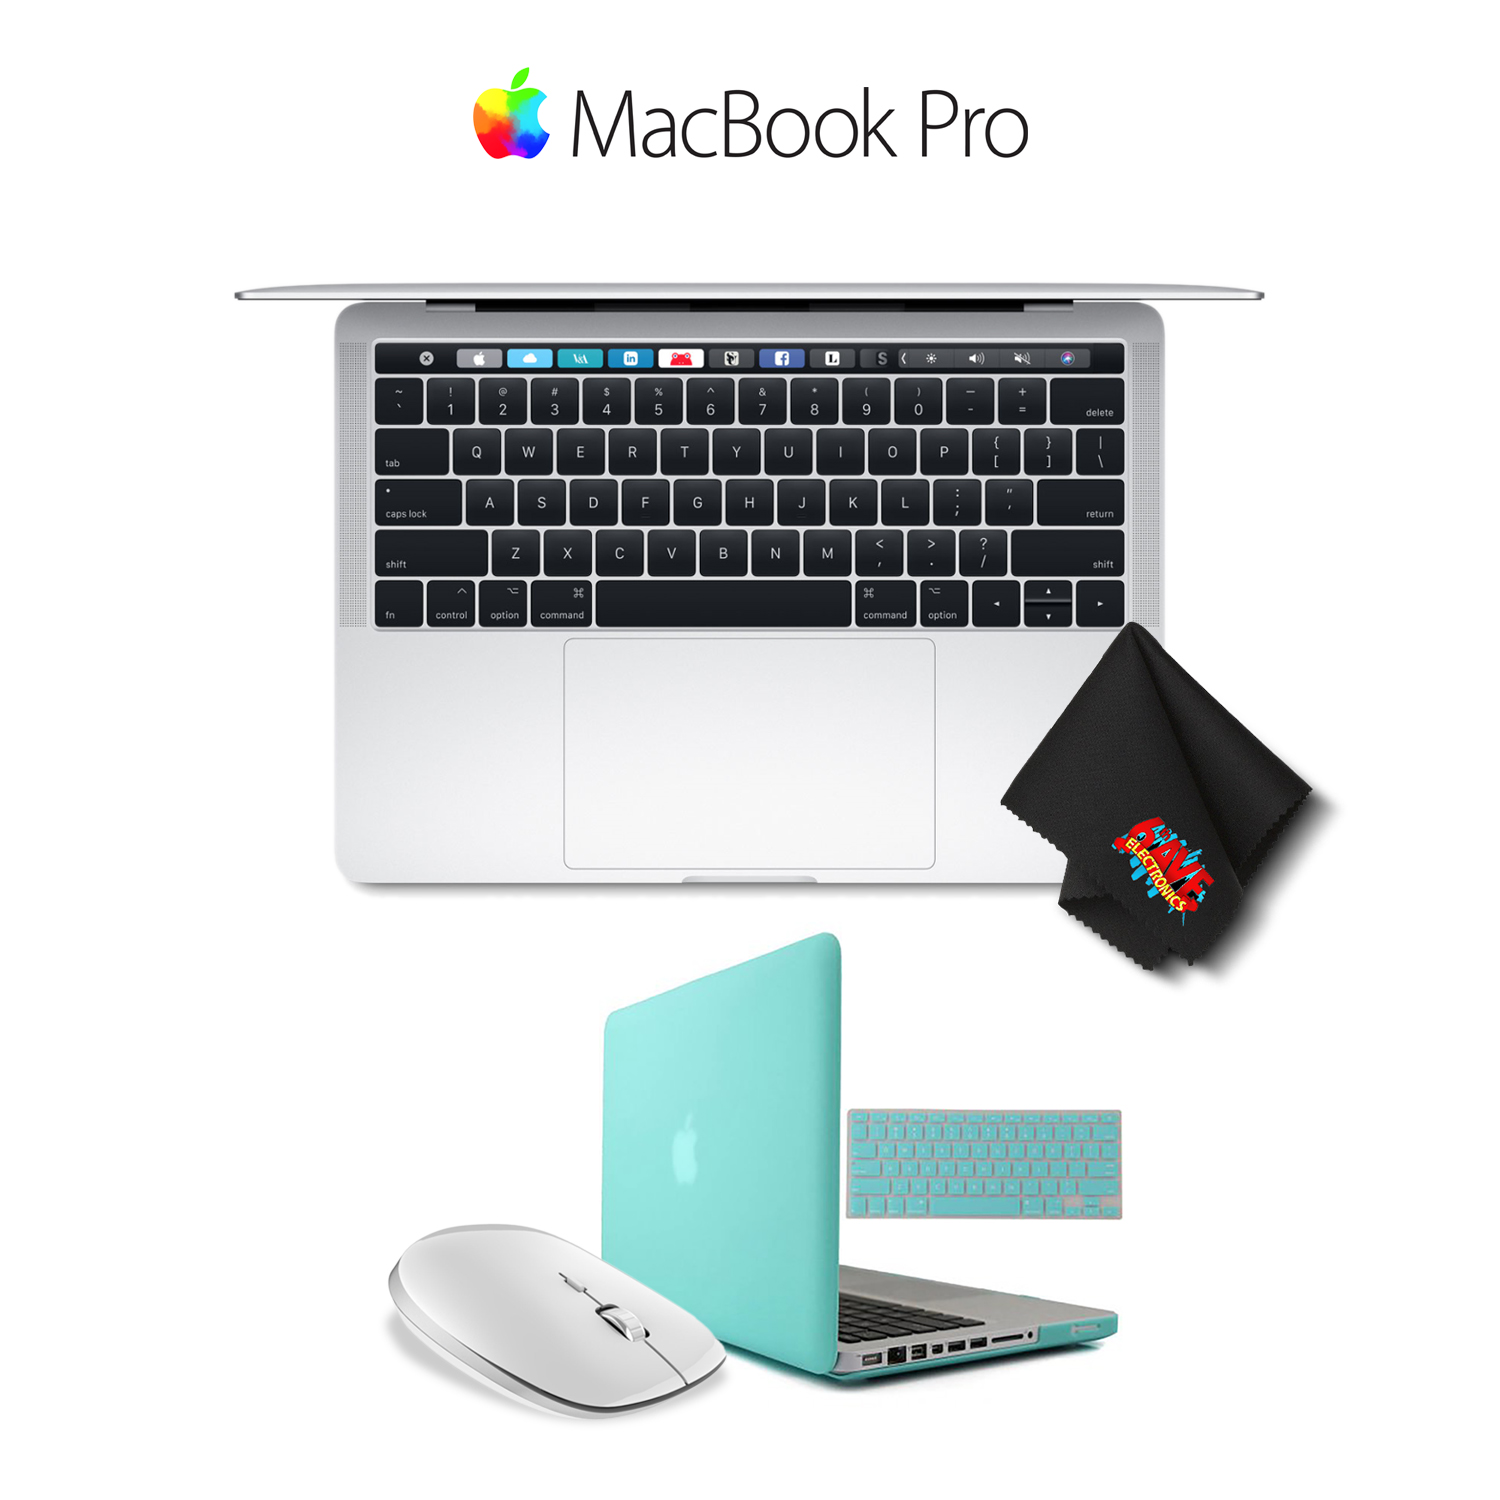 """Apple MacBook Pro MPXX2LL/A 13.3"""" with Touch Bar (Mid 2017 Version, Silver) Bundle w/White Mouse w/Turquoise Case and Keyboard Cover"""